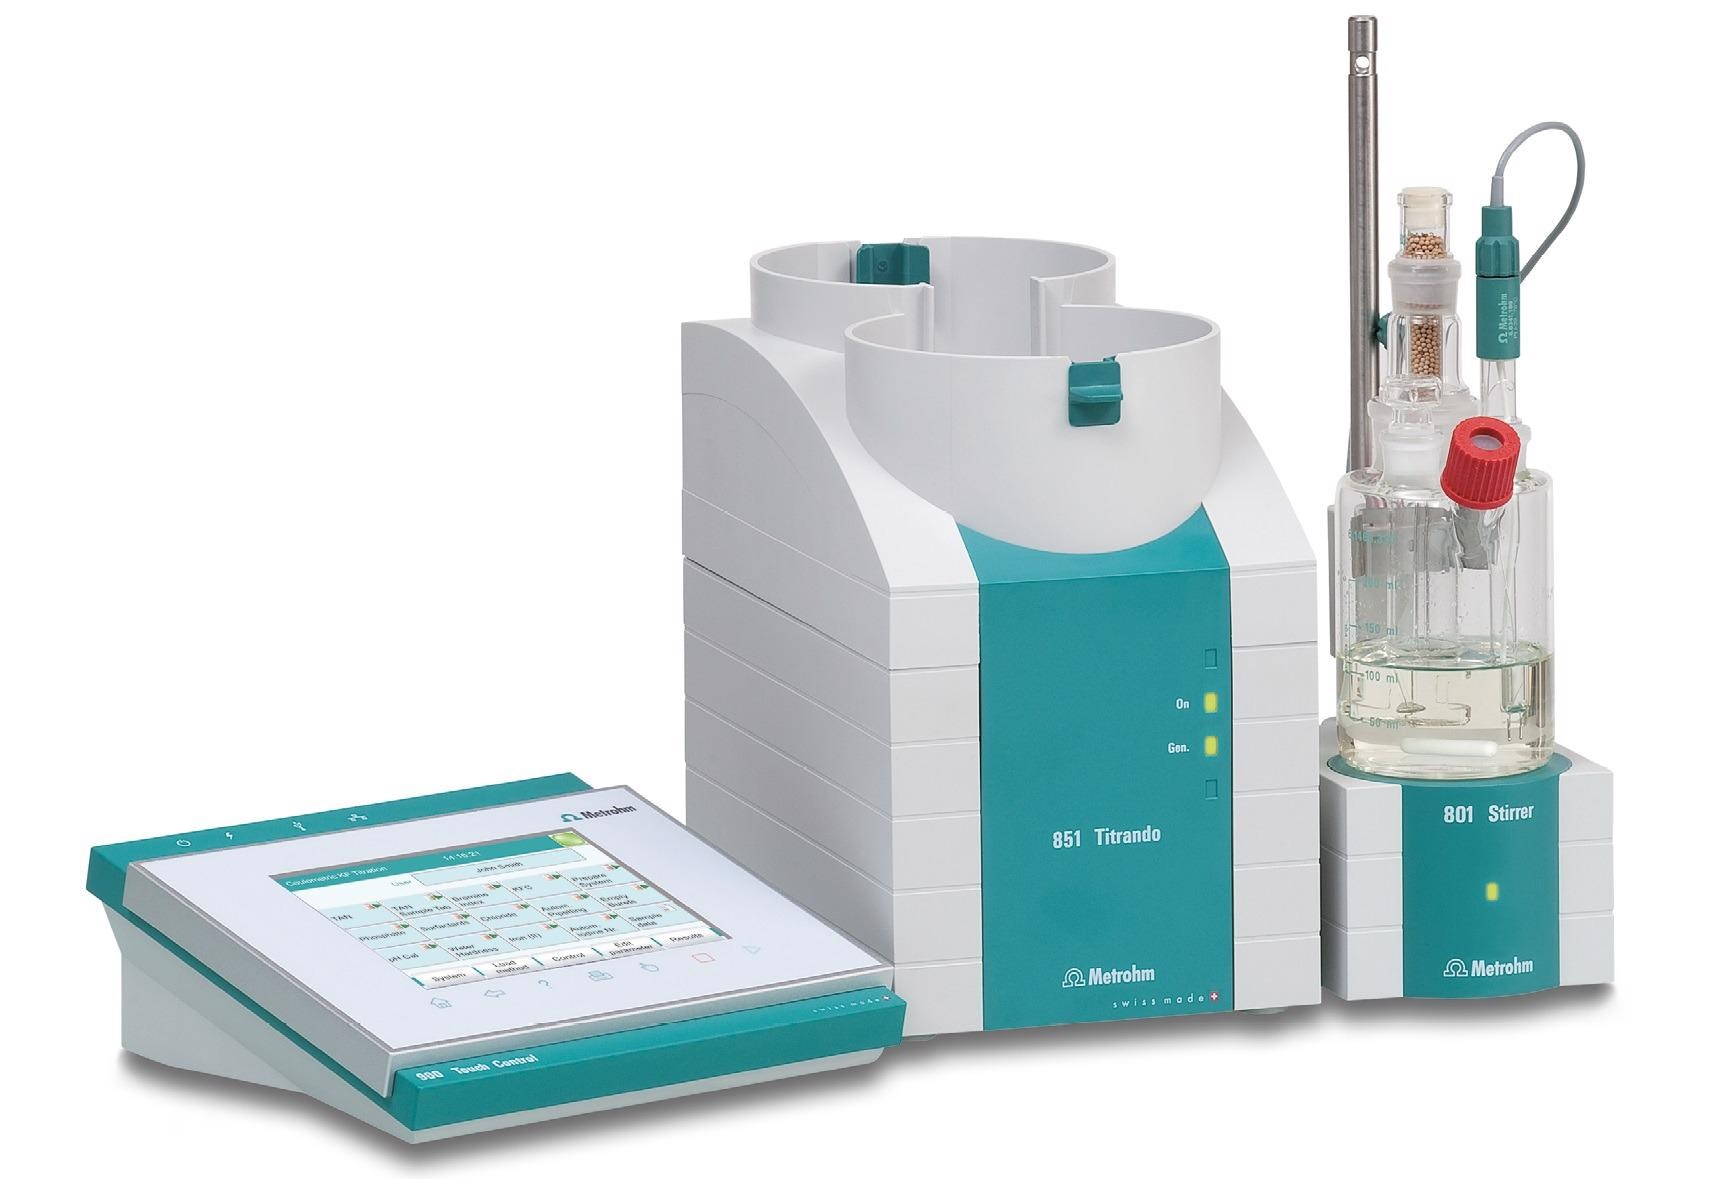 A coulometric Karl Fischer titration system suitable for ASTM D6304 Procedure A.